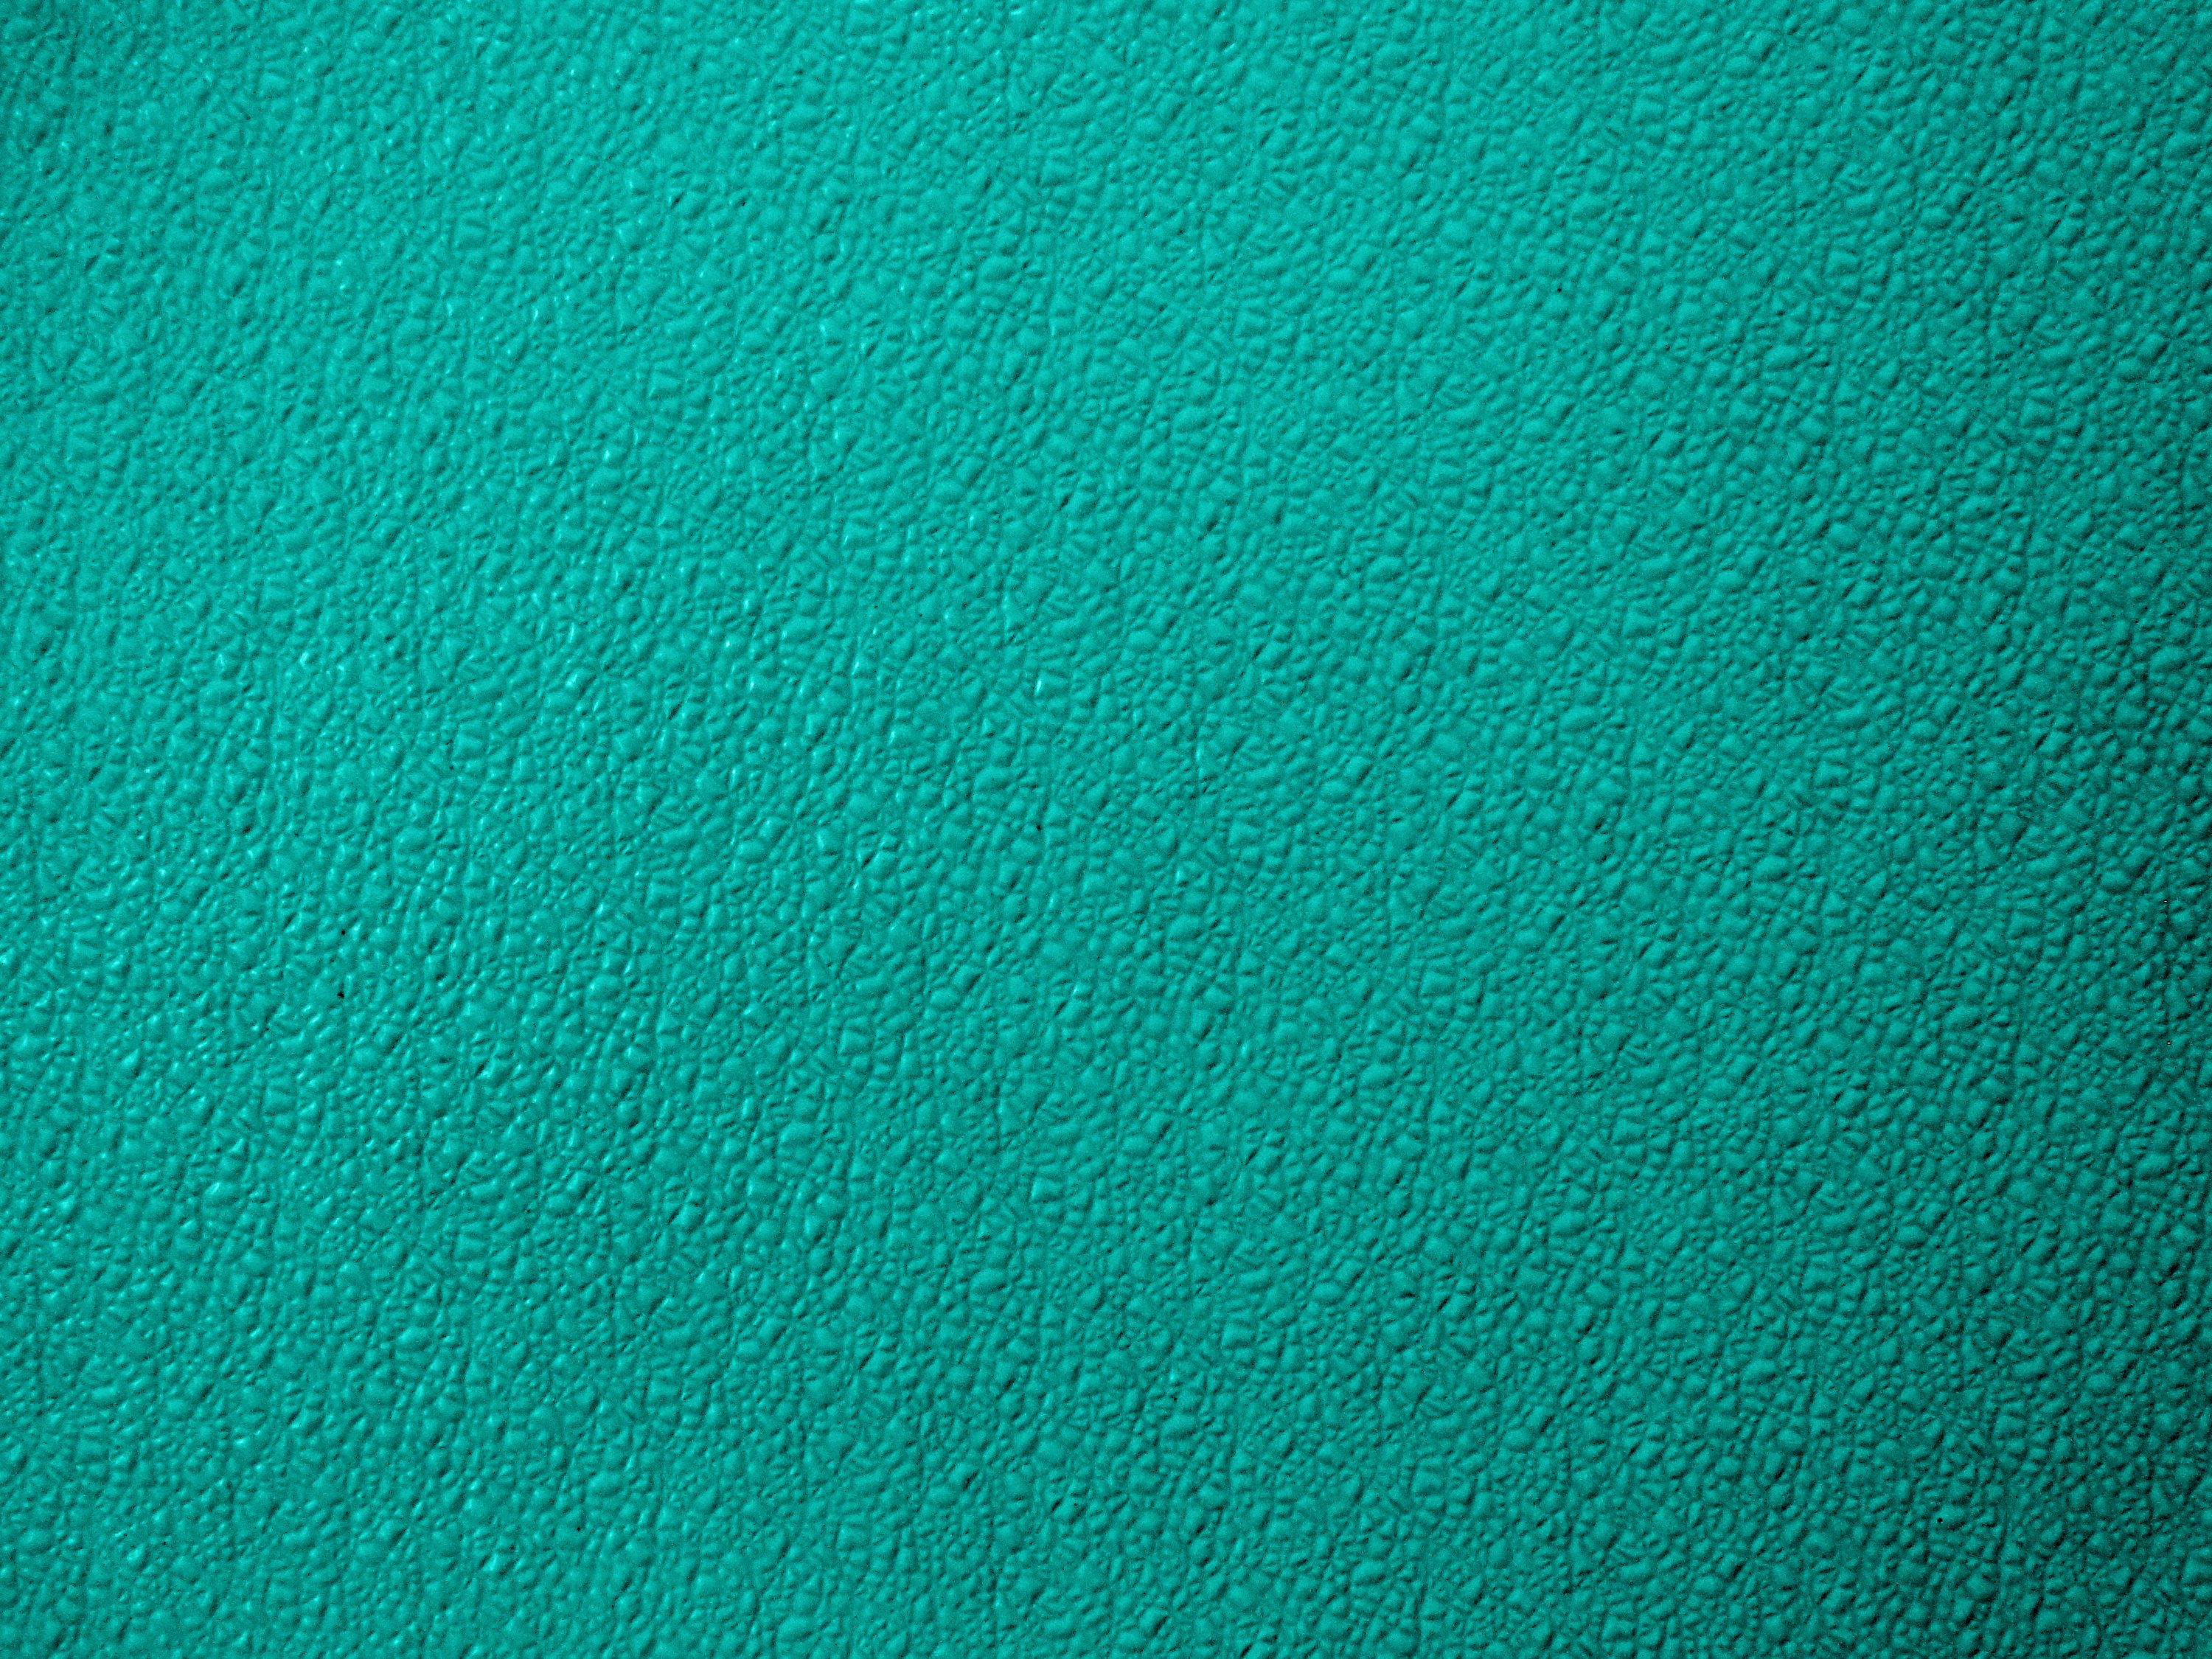 Bumpy turquoise plastic texture picture free photograph for Turquoise colour images